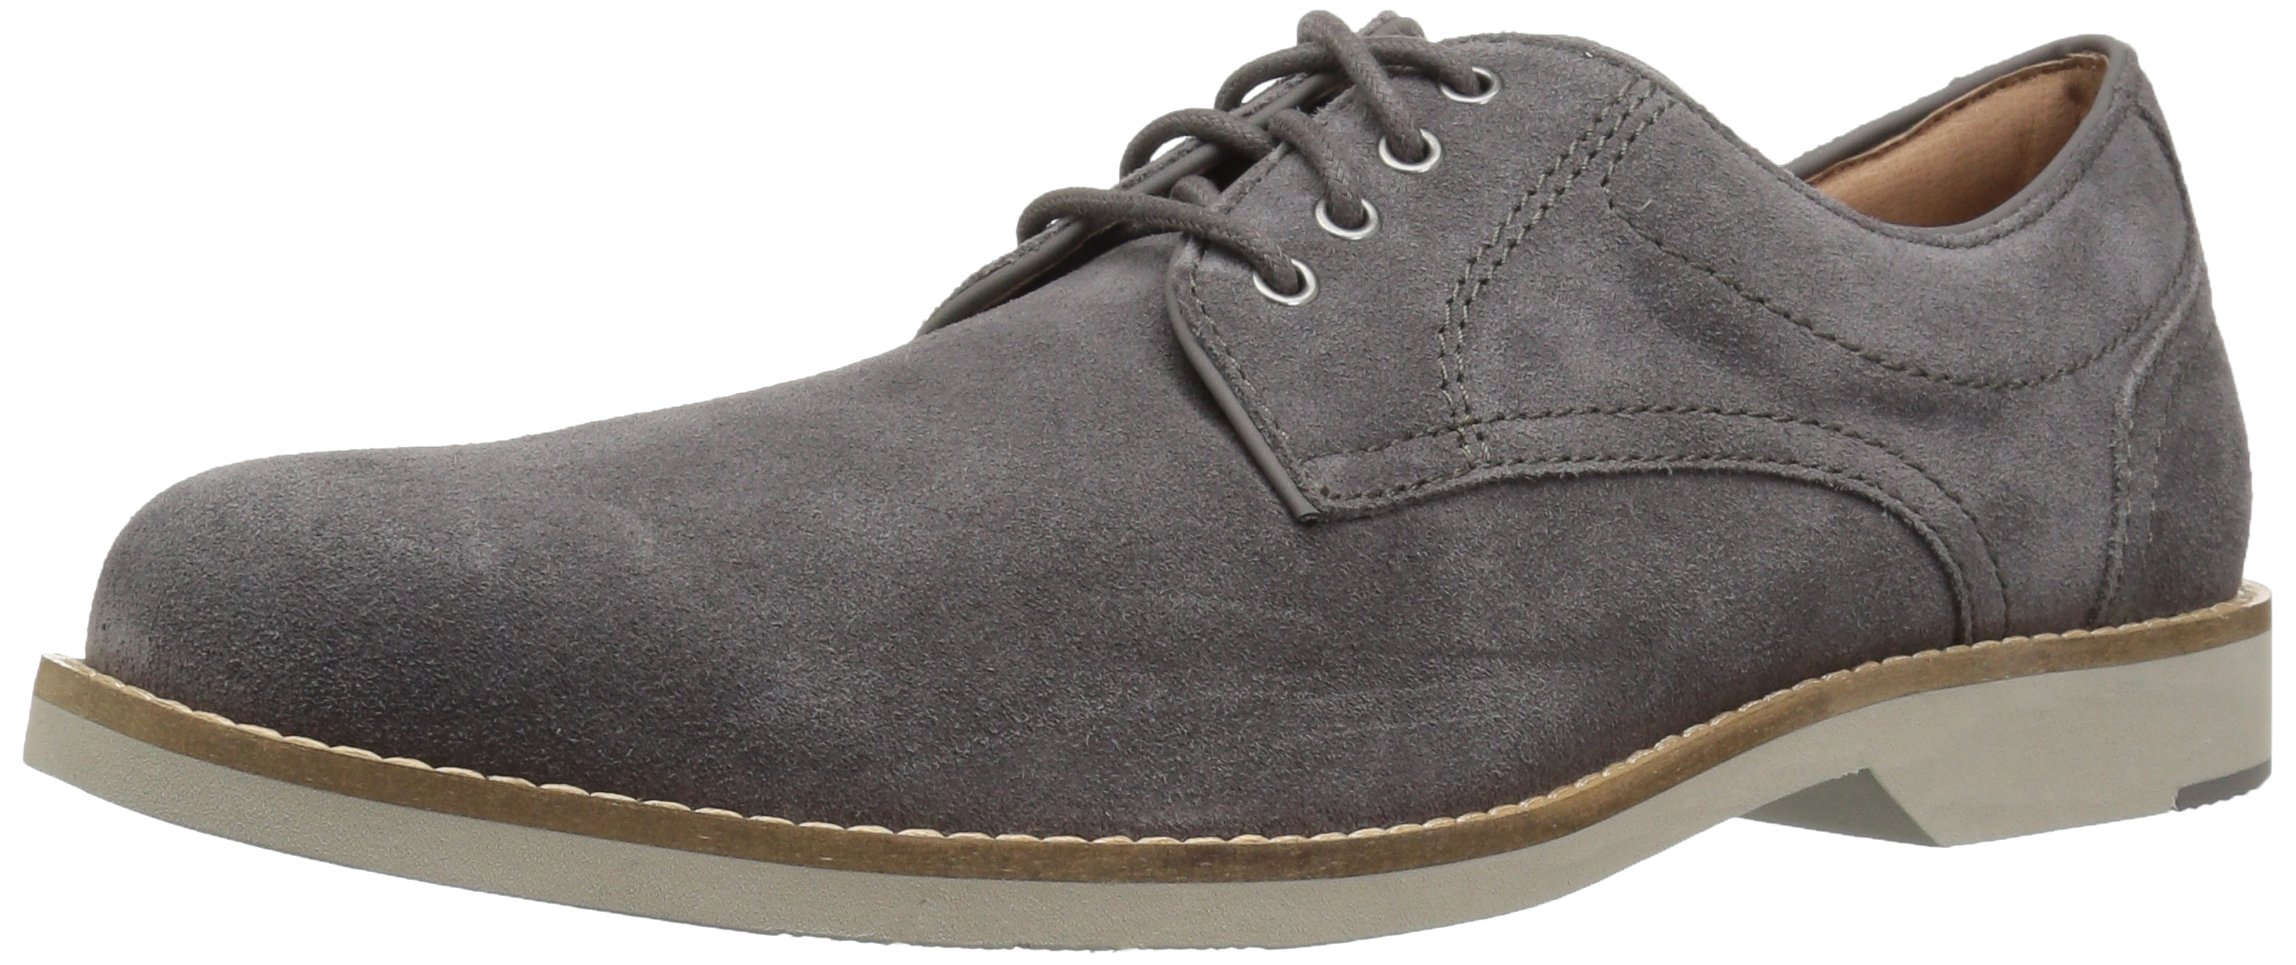 206 Collective Men's Barnes Suede Casual Oxford, Gray Suede, 10.5 D US by 206 Collective